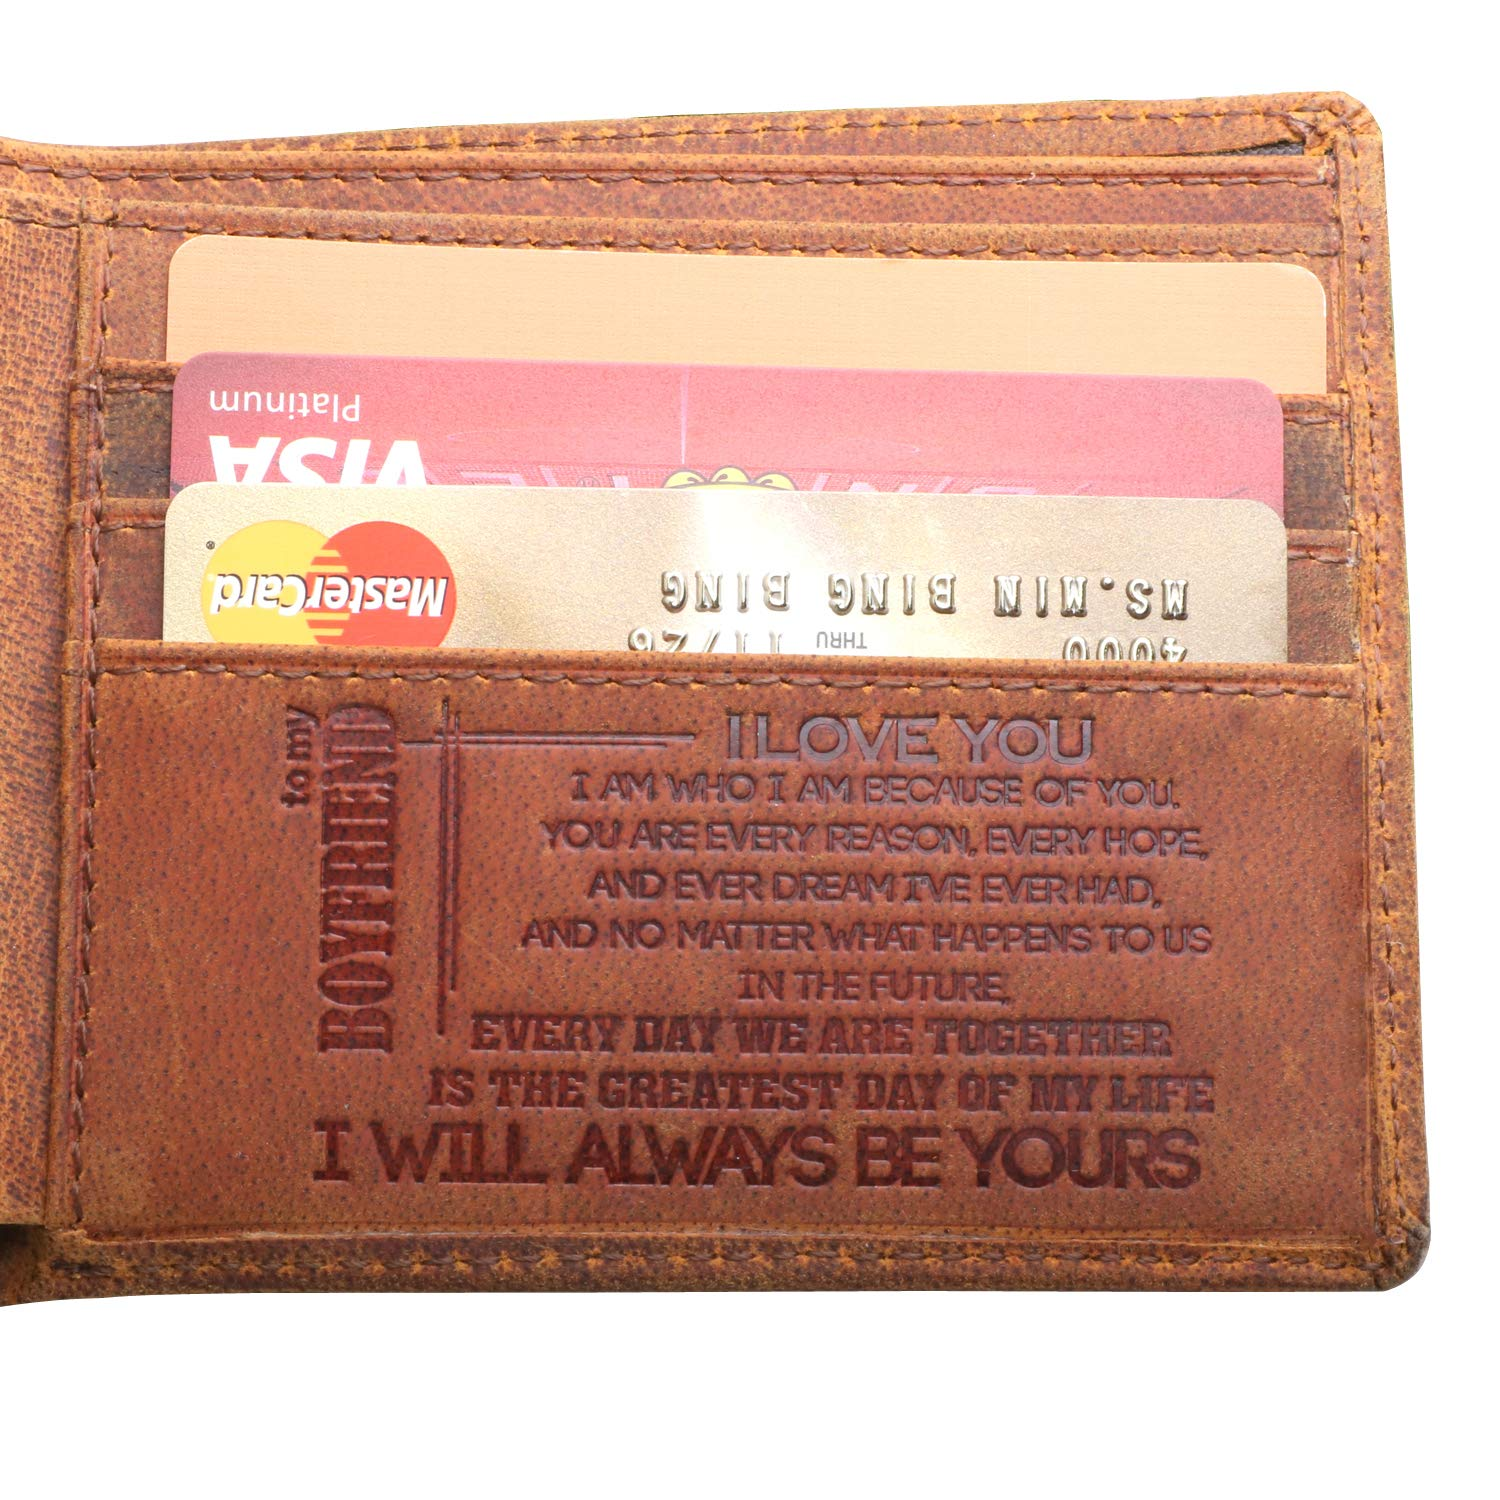 Heartwarming sentiments on beautiful wallet